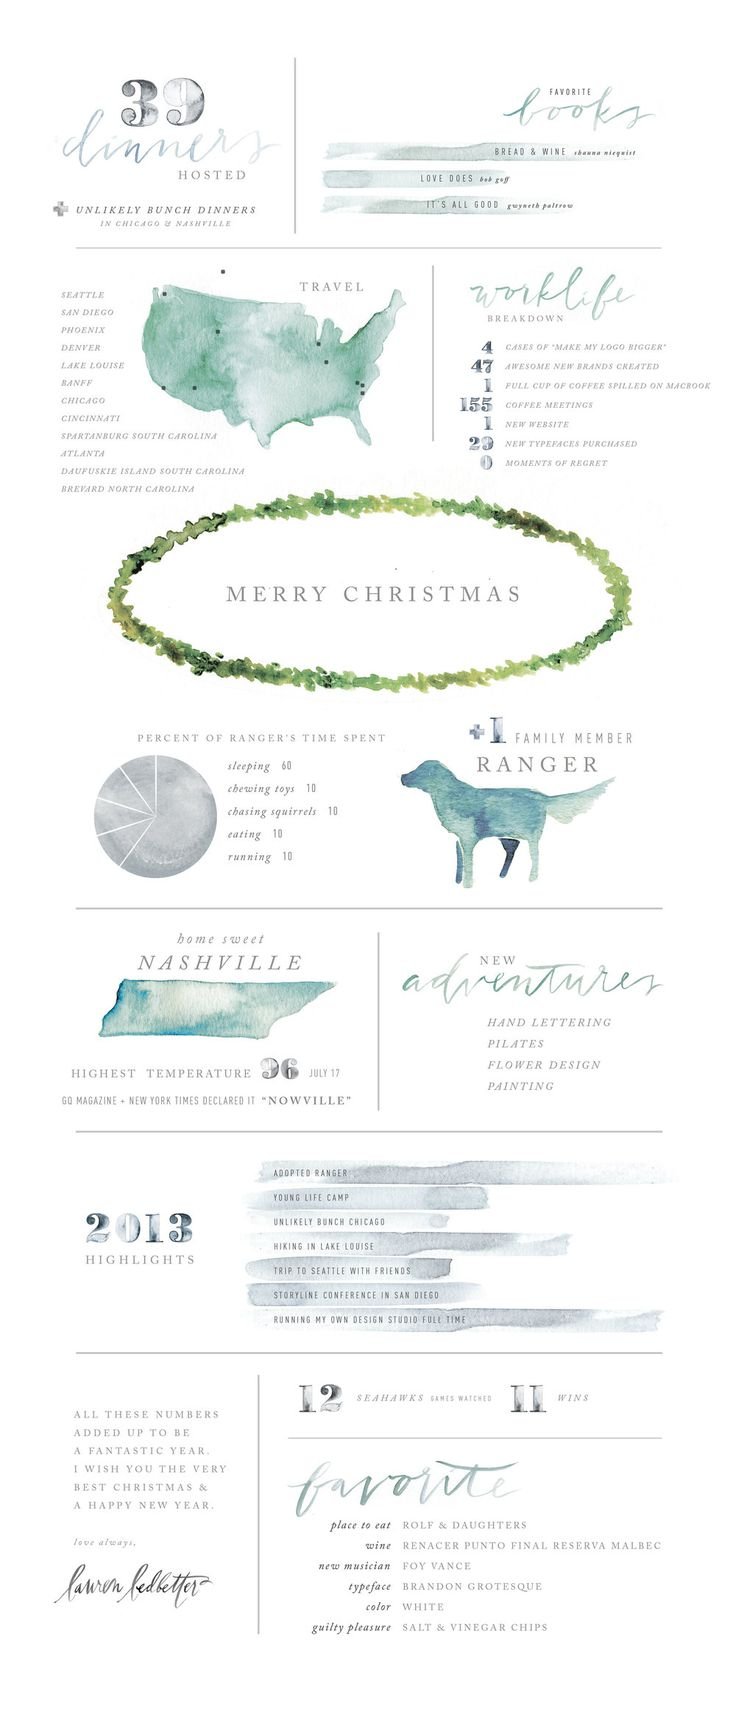 ALTERNATIVE COVERAE: What a cool way to package several small stories. Great infograph ideas as well.